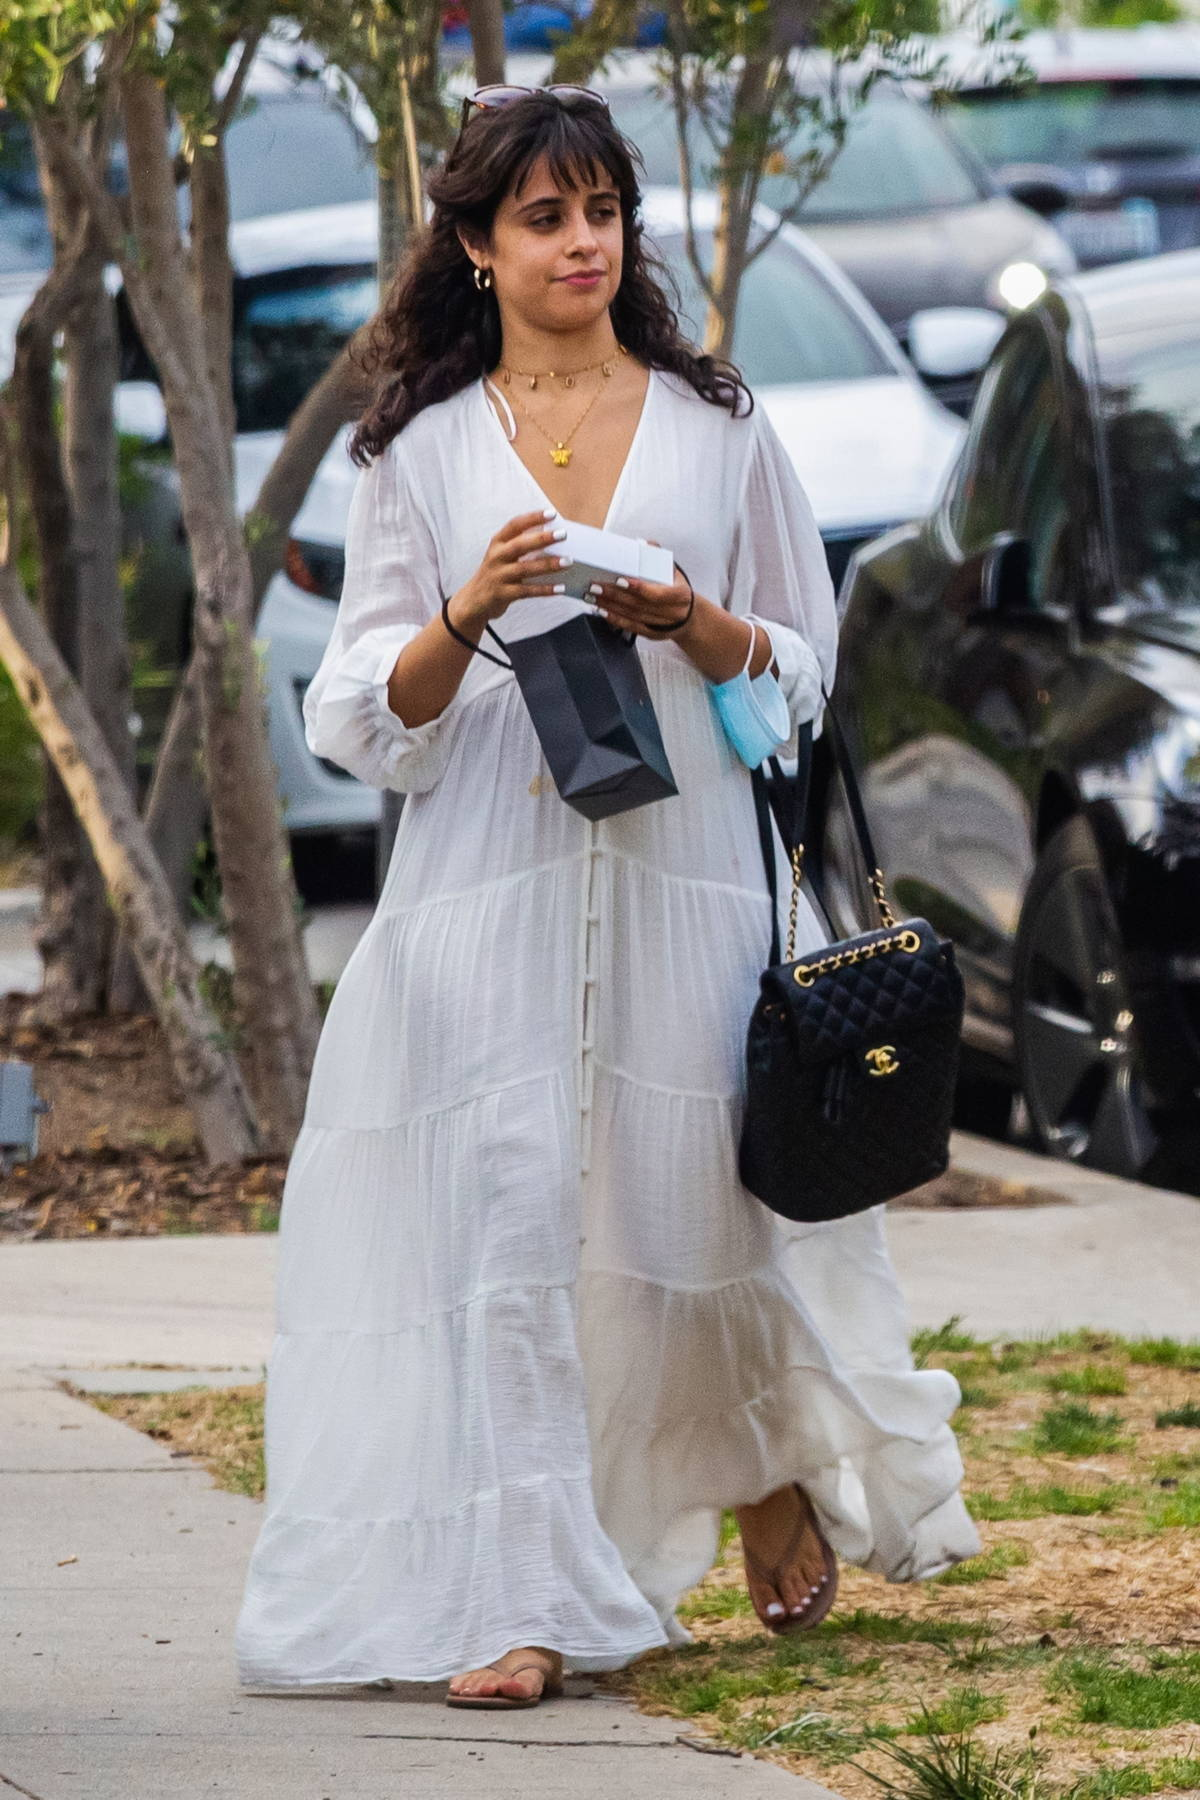 Camila Cabello looks radiant in a flowing white dress while out shopping with a friend in Los Angeles